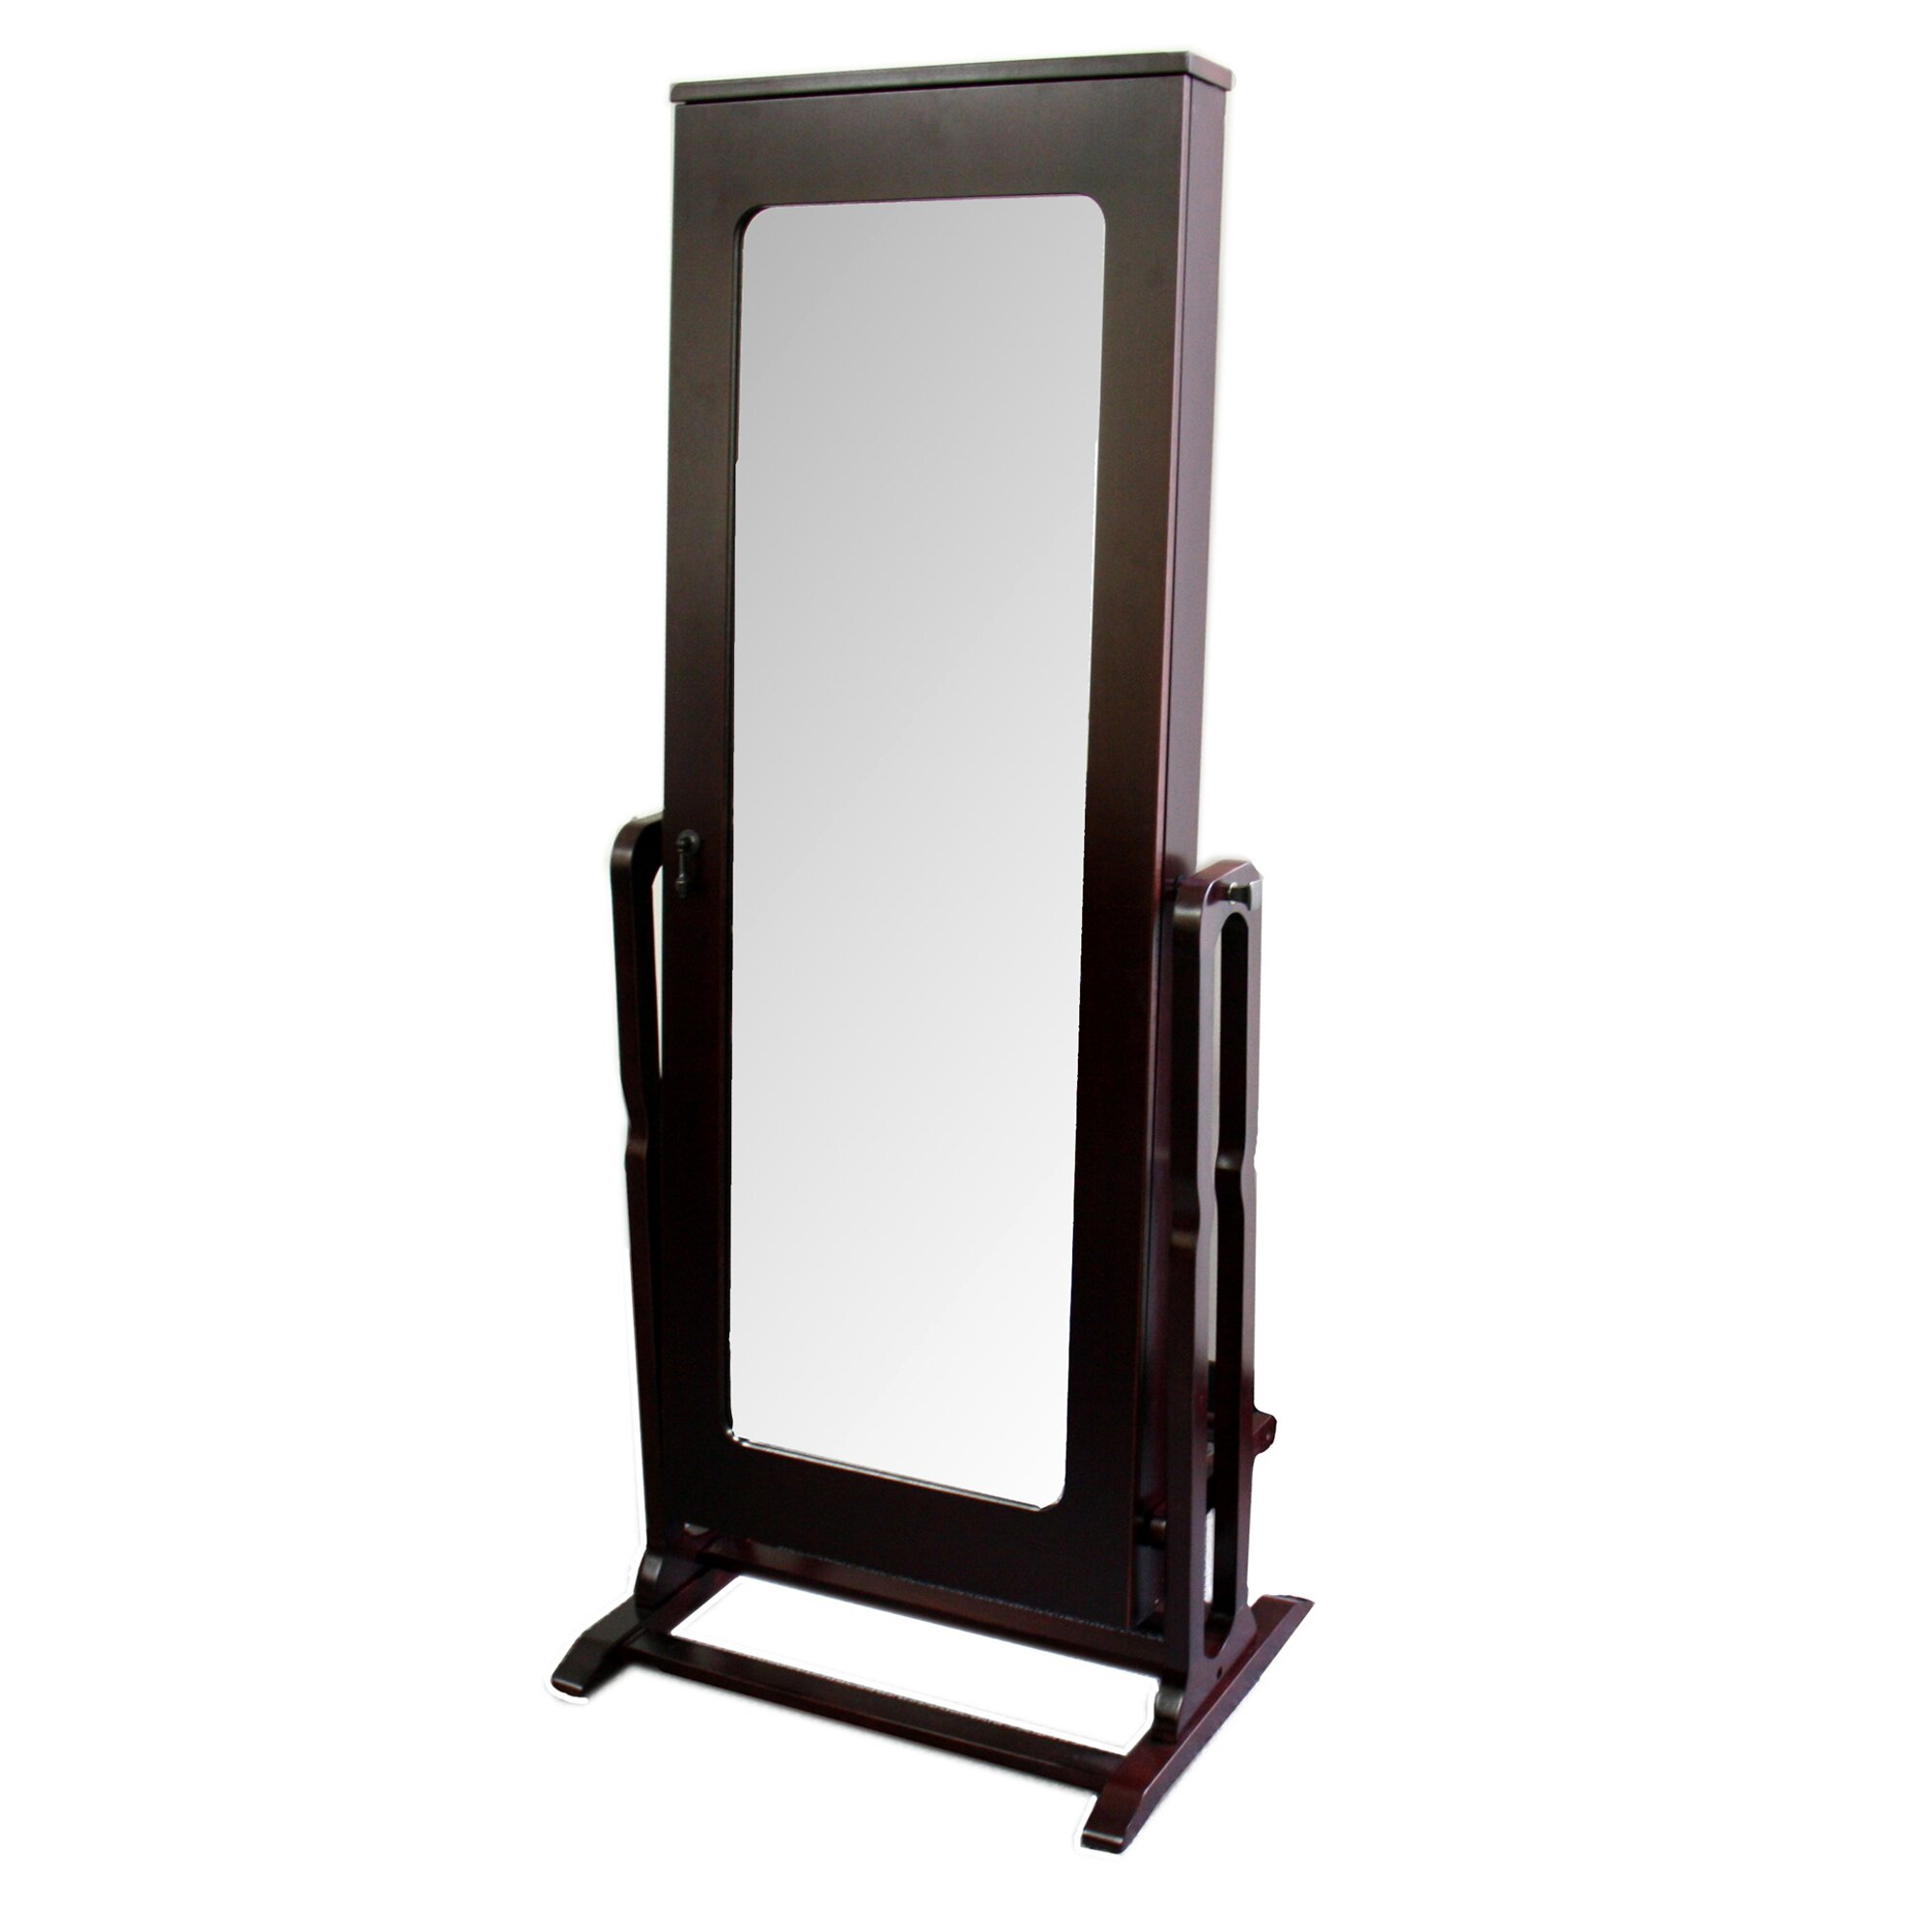 Ore furniture standing mirror with storage reviews wayfair for White long standing mirror